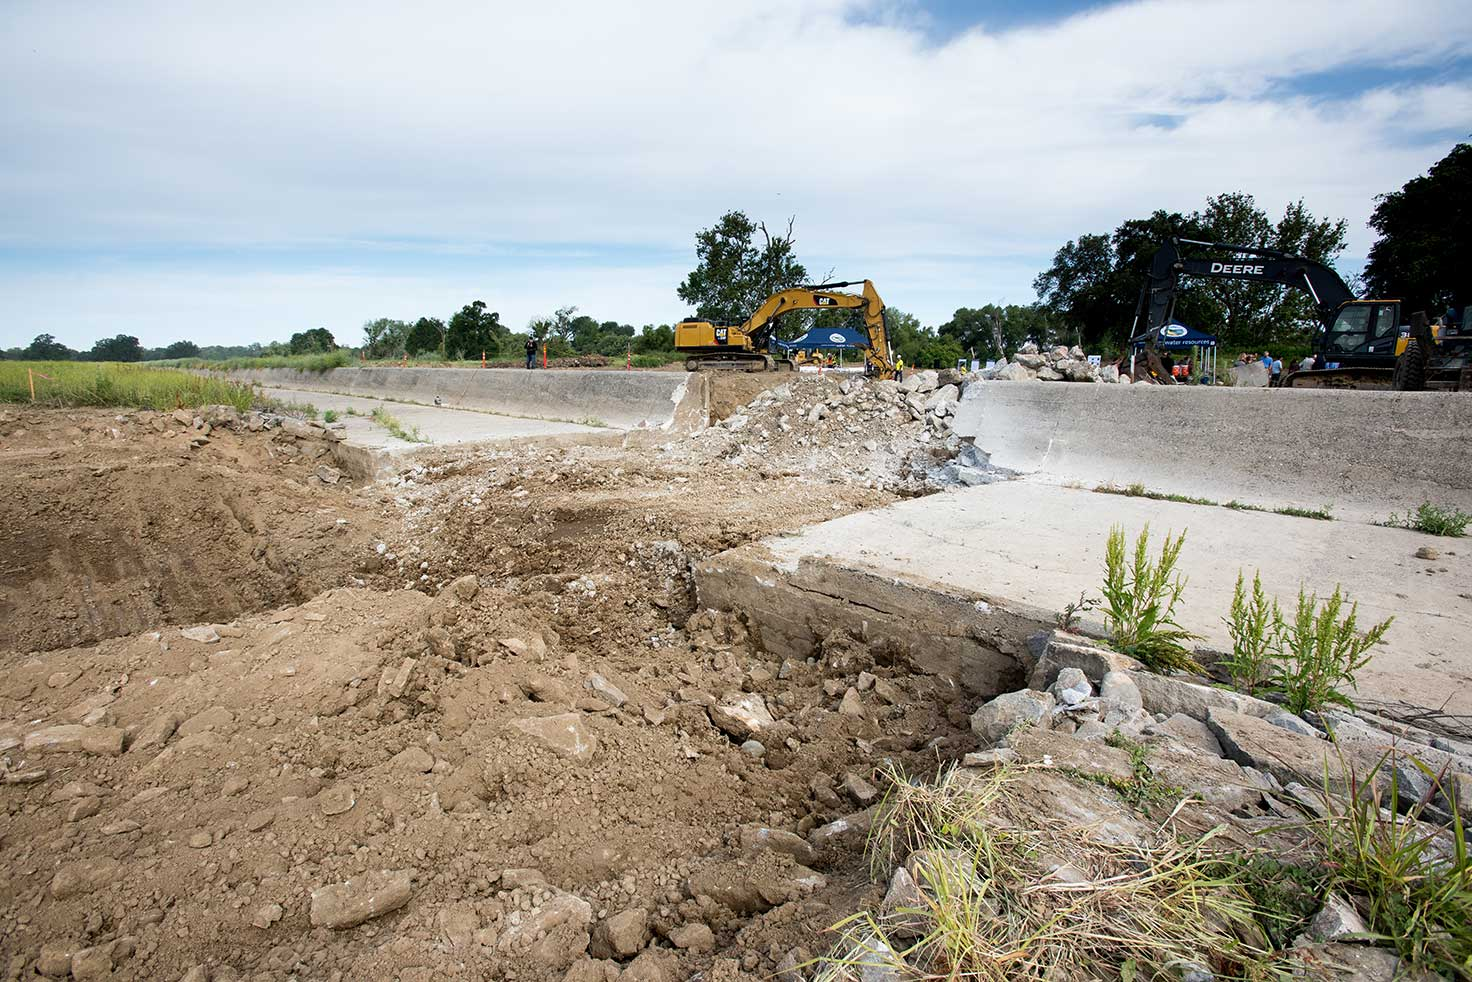 Photo 2: Demolition of the old fish ladder at the Fremont Weir began May 29, 2018. Photo courtesy of Department of Water Resources (Kelly M. Grow)